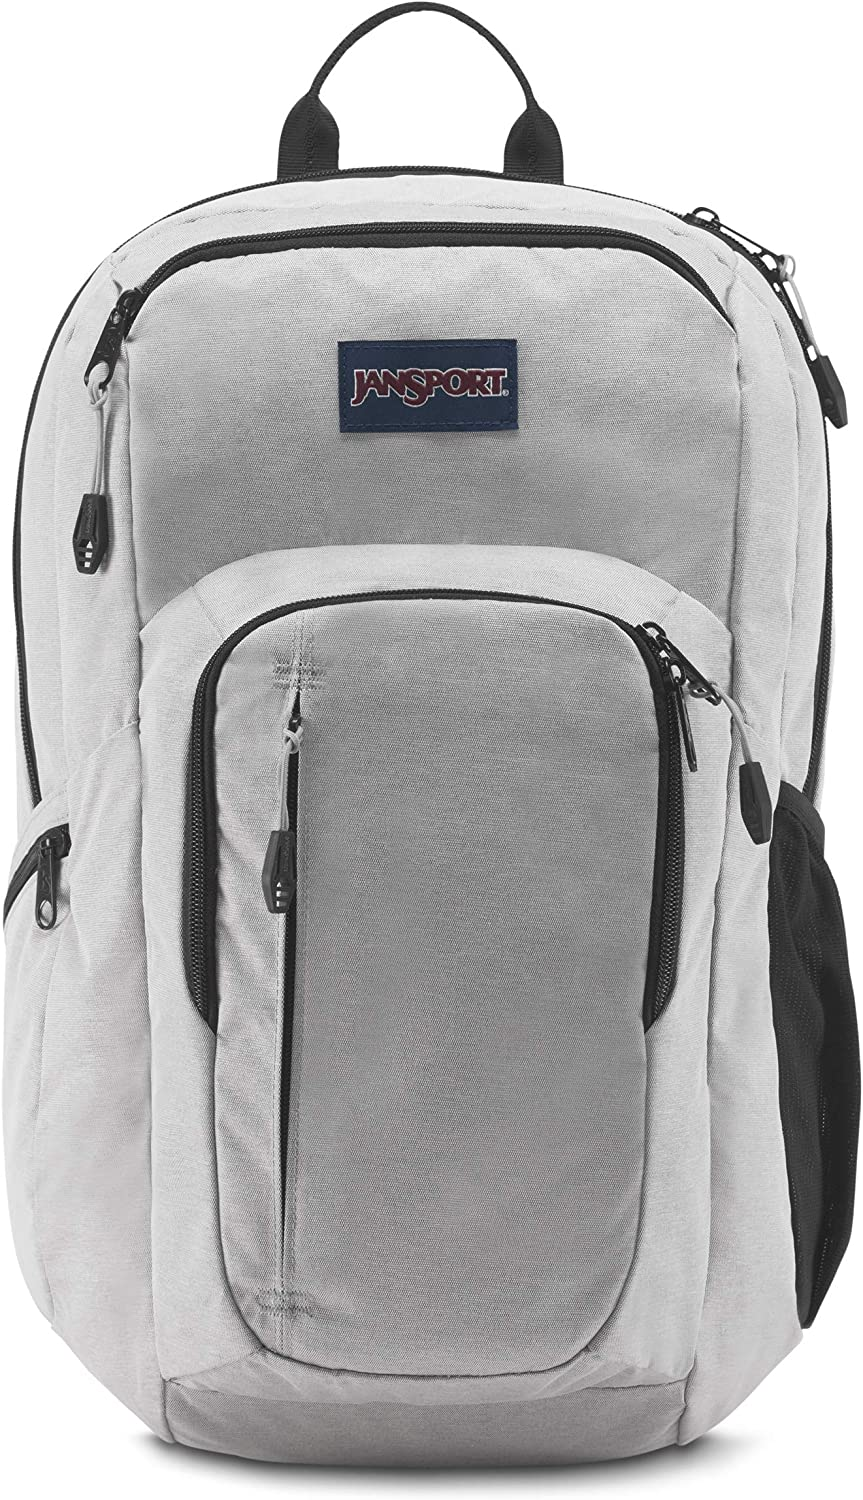 JanSport JS00T69G3F6 Recruit Laptop Backpack, Grey Heathered Poly